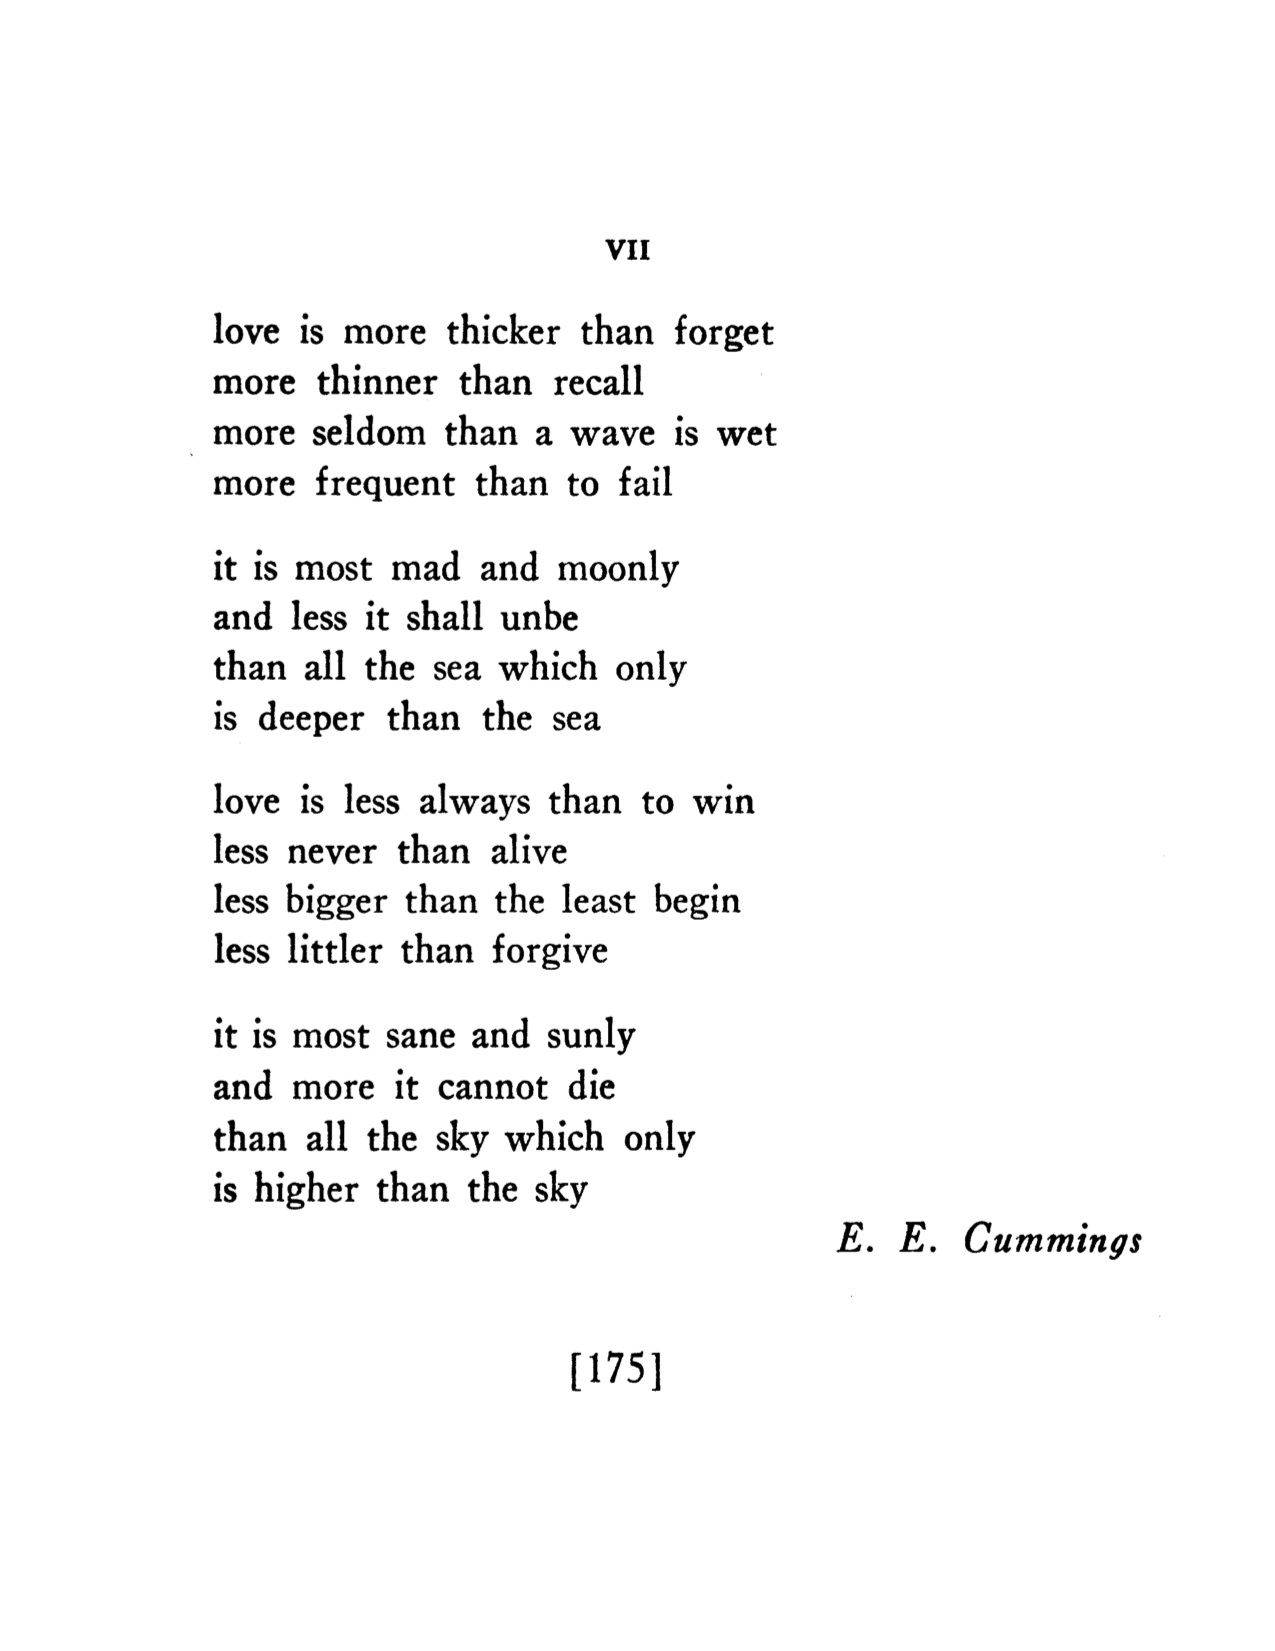 analysis of e e cummings poem A satirical sonnet by the master of experimental syntax eecummings shows off his unique talent for unusual form and content by exposing the cliche.